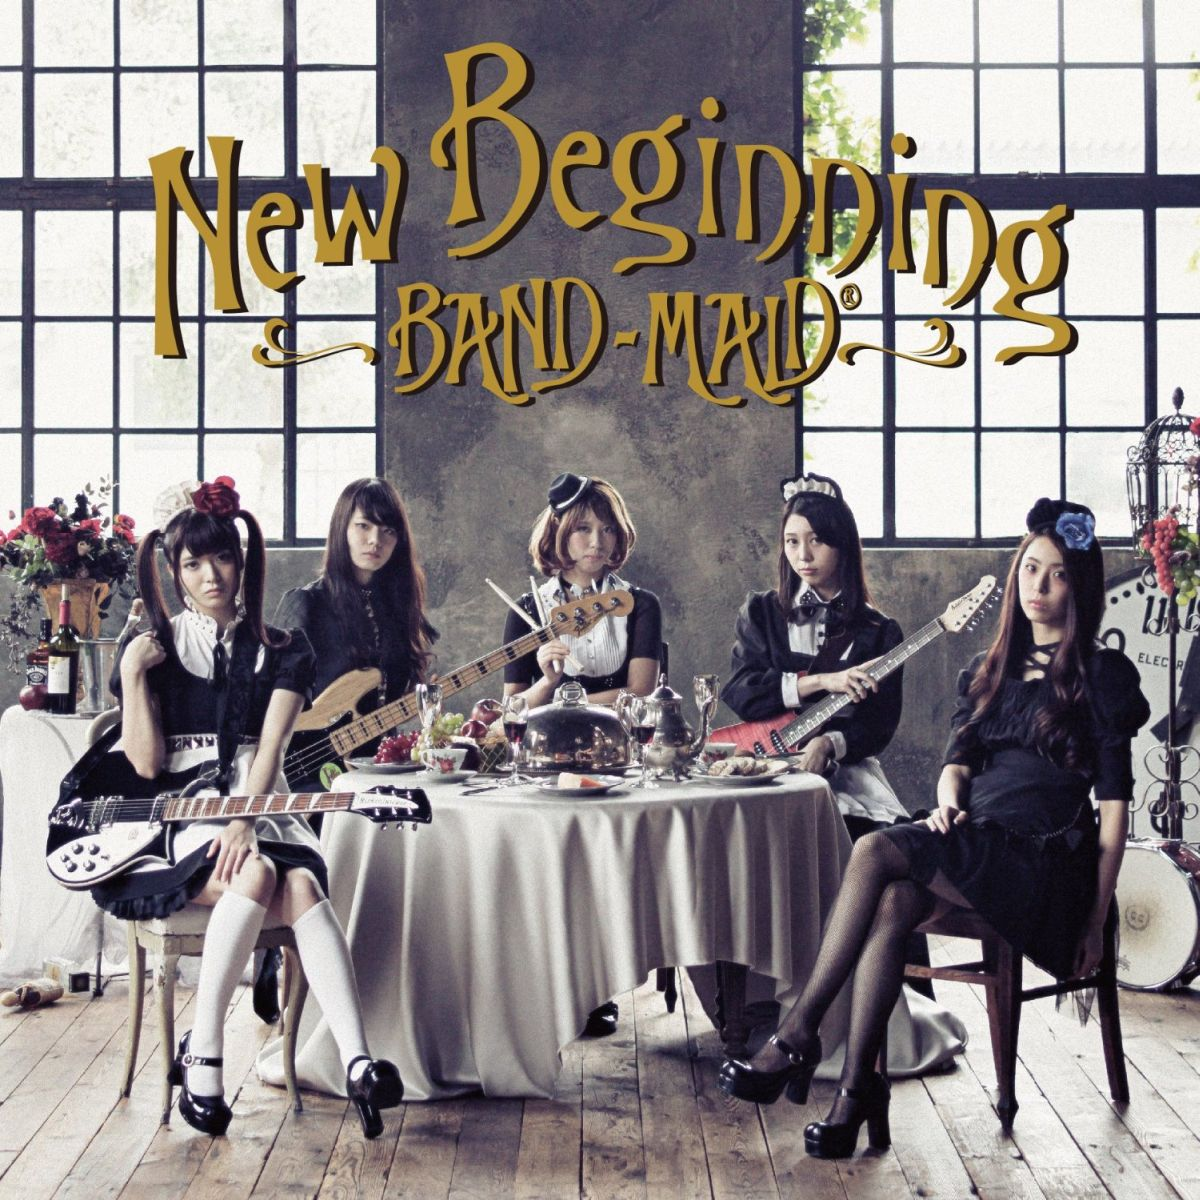 JRock247-Band-Maid-Real-Existence-Spotify